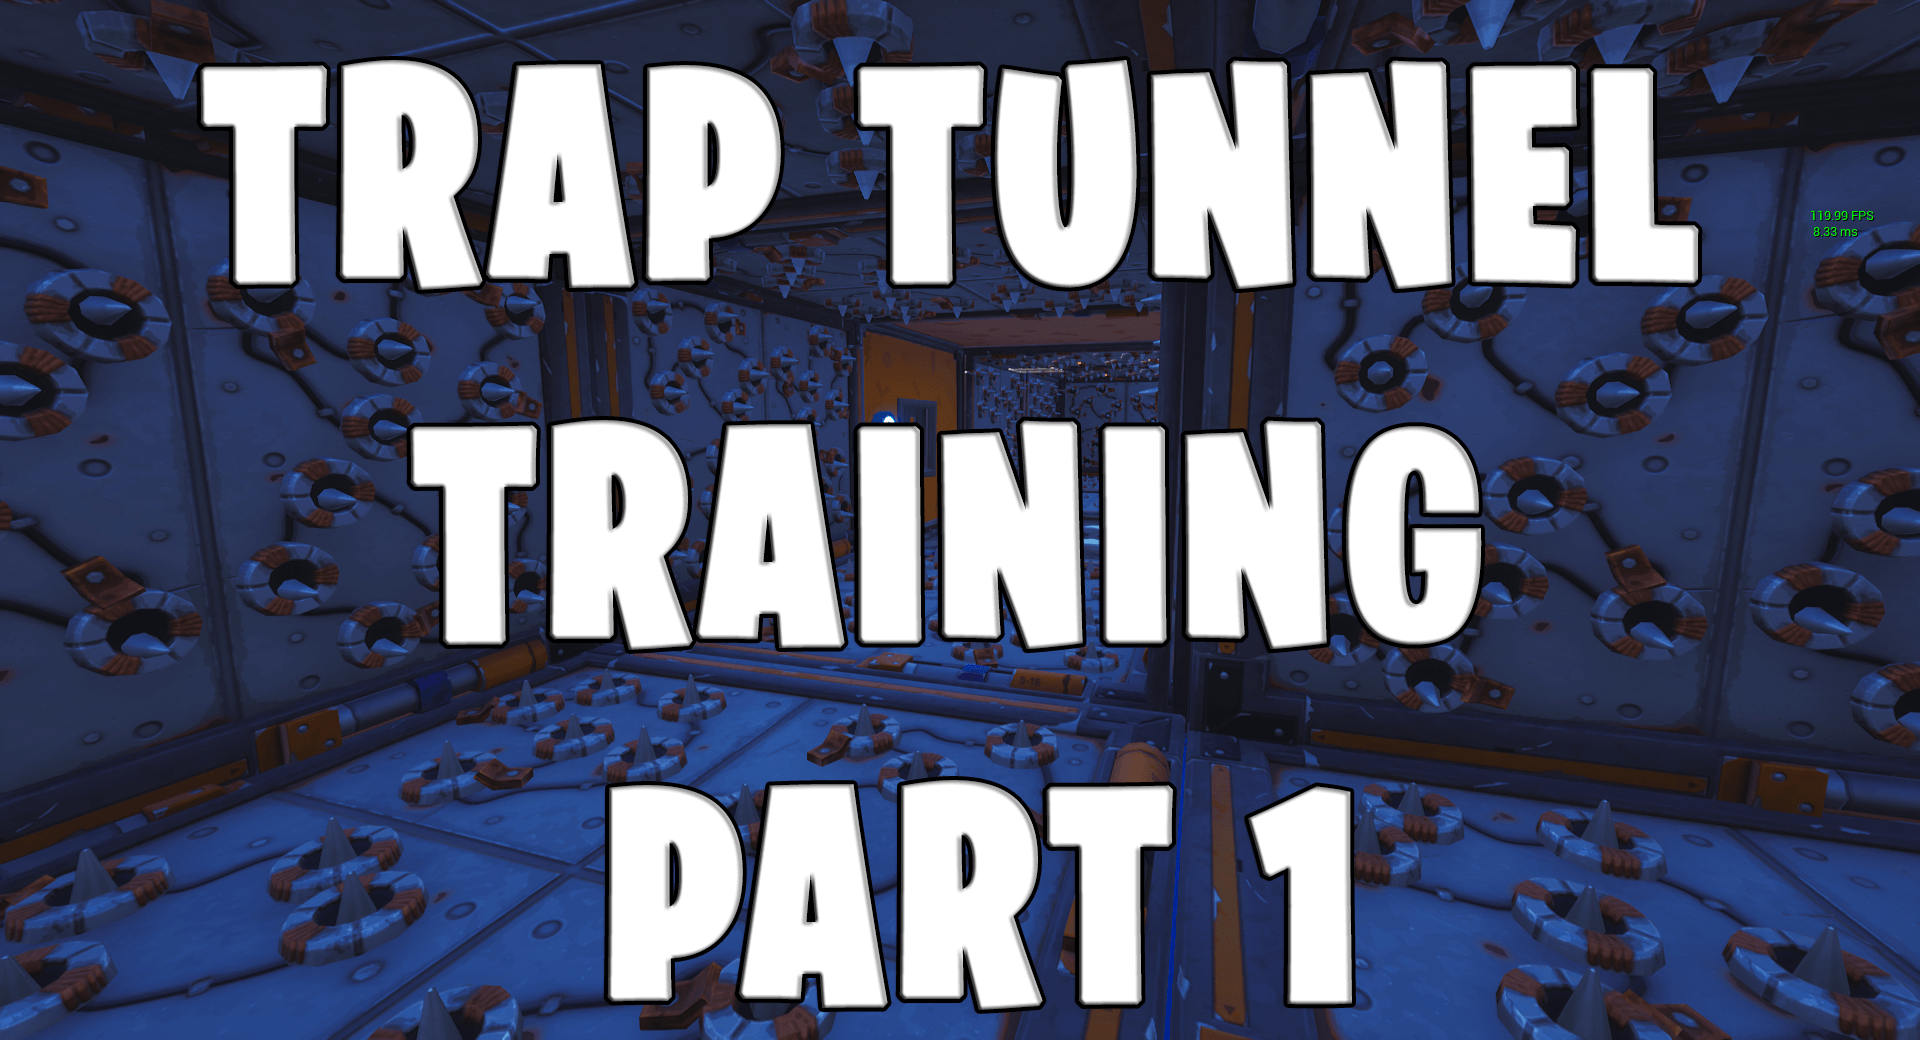 TRAP TUNNEL TRAINING PART 1